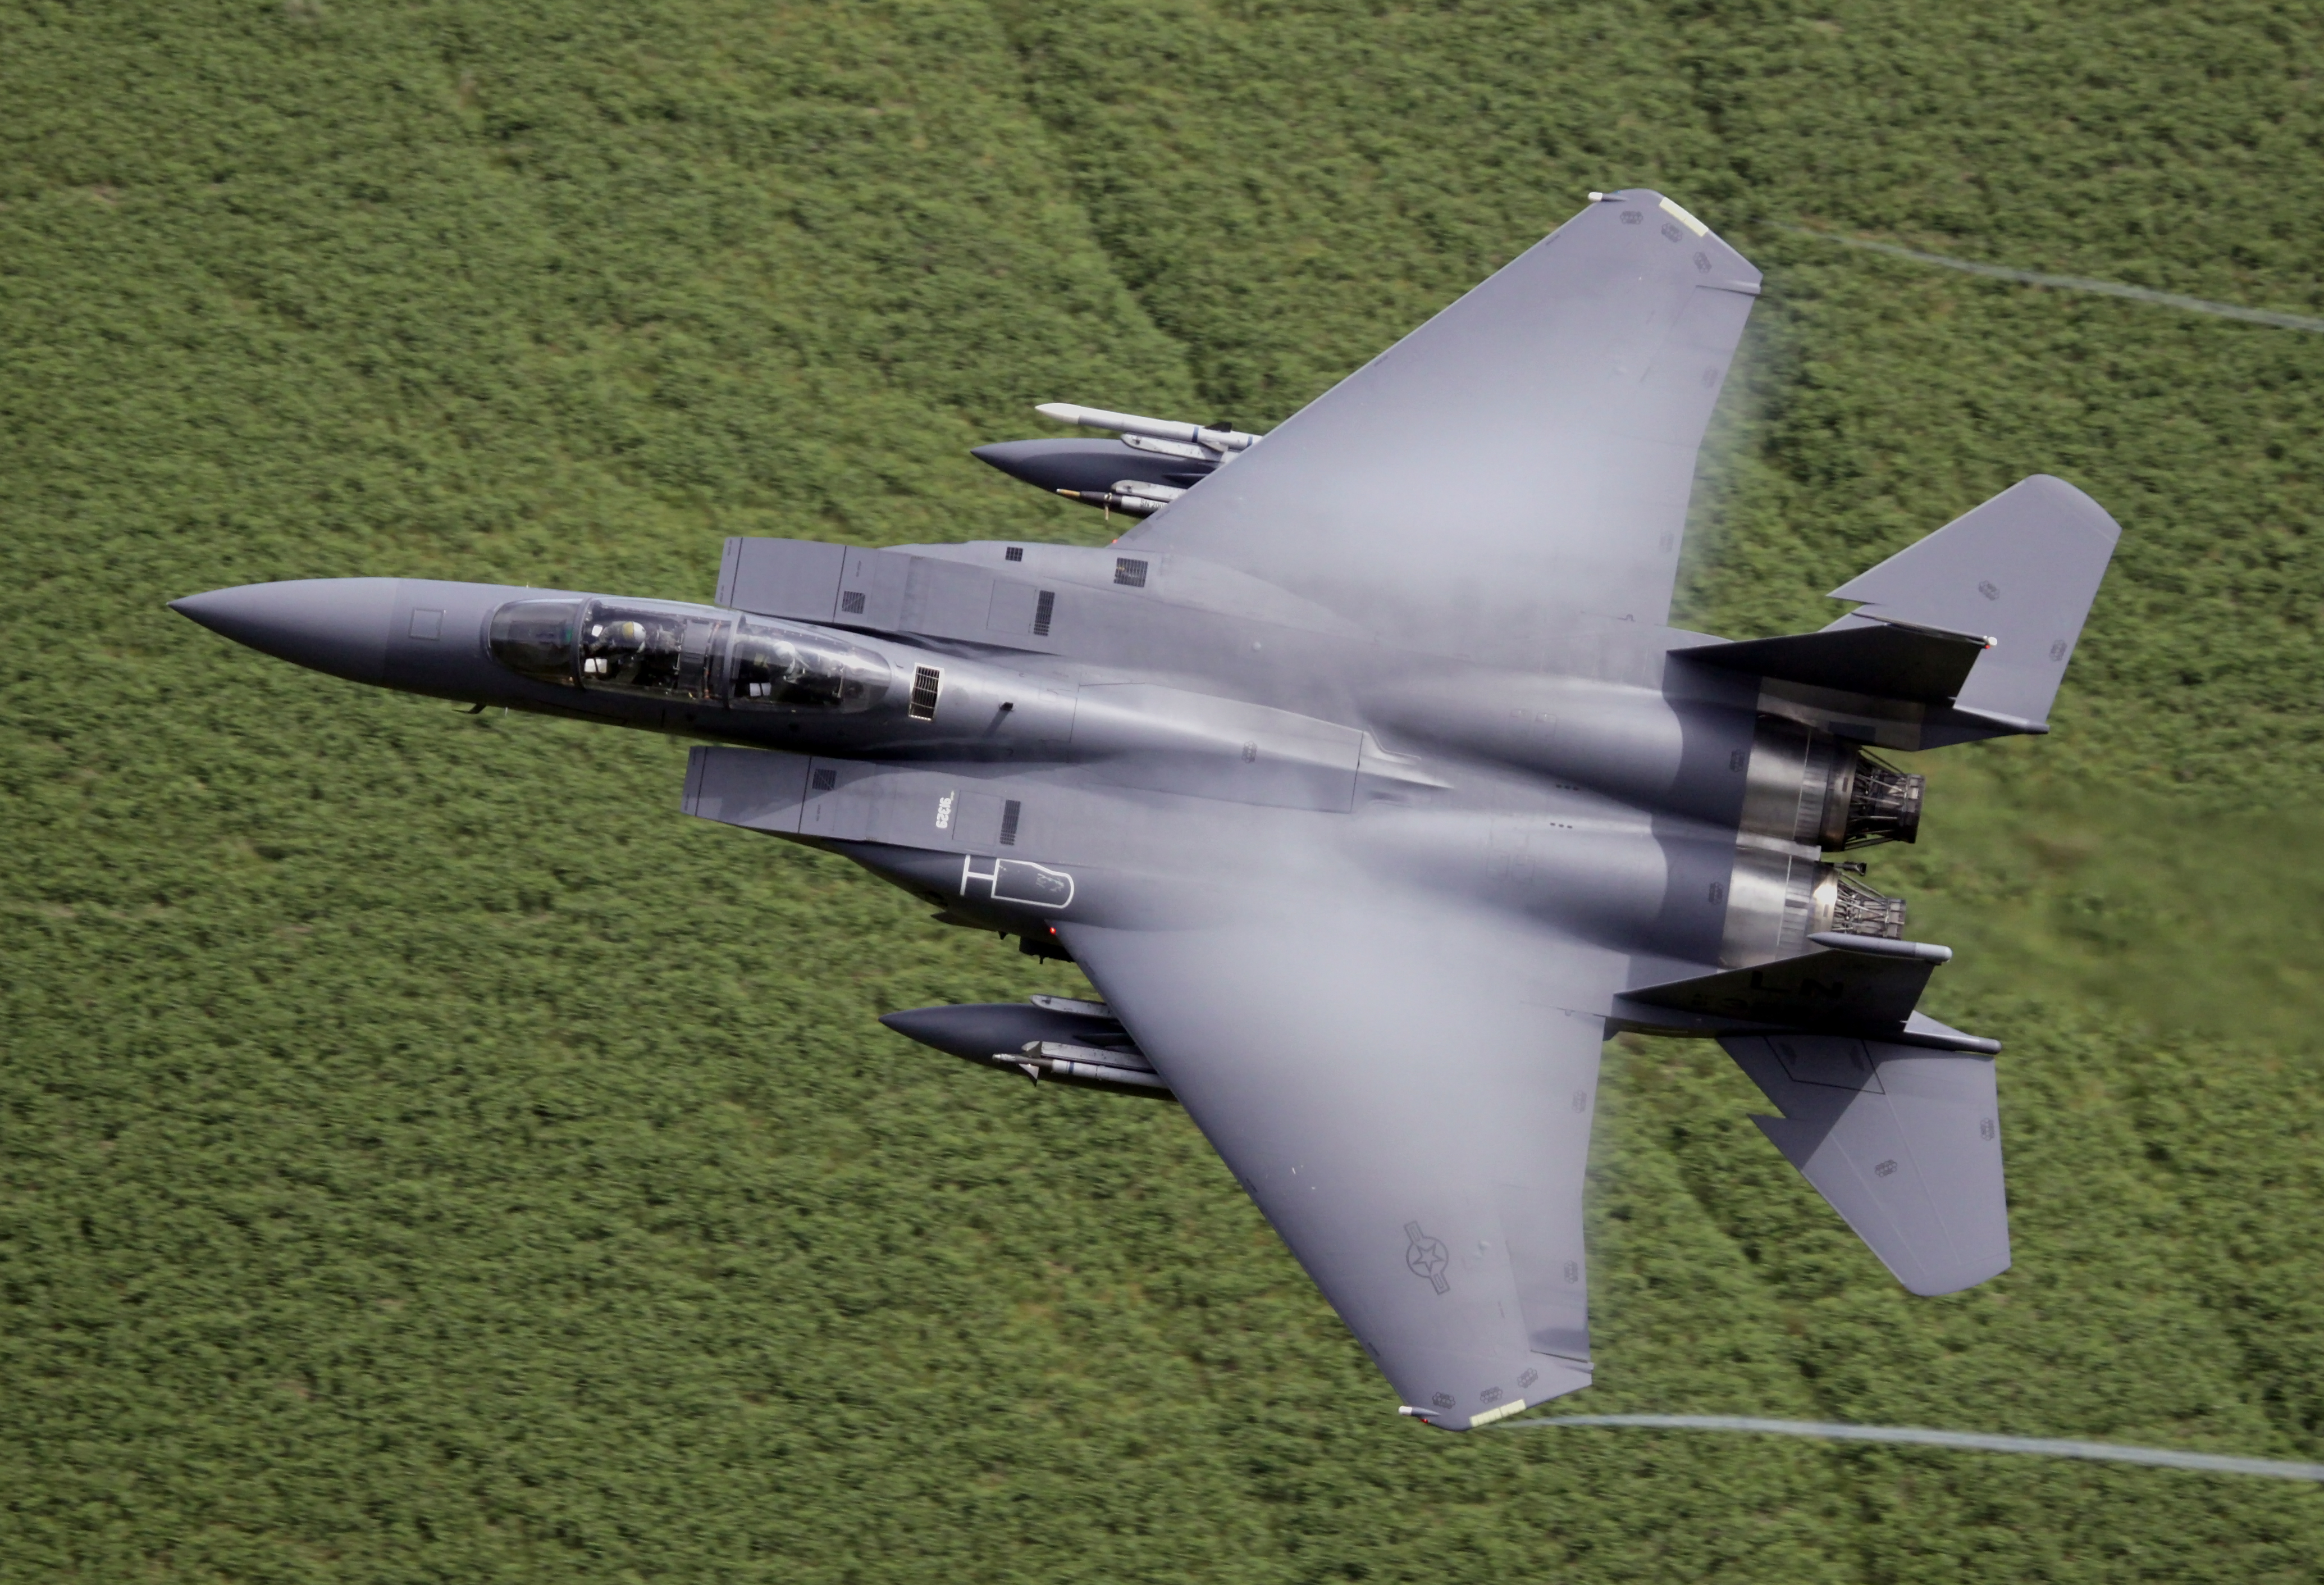 F 15 Eagle Wallpaper HD 10 690 Images HD Wallpapers.